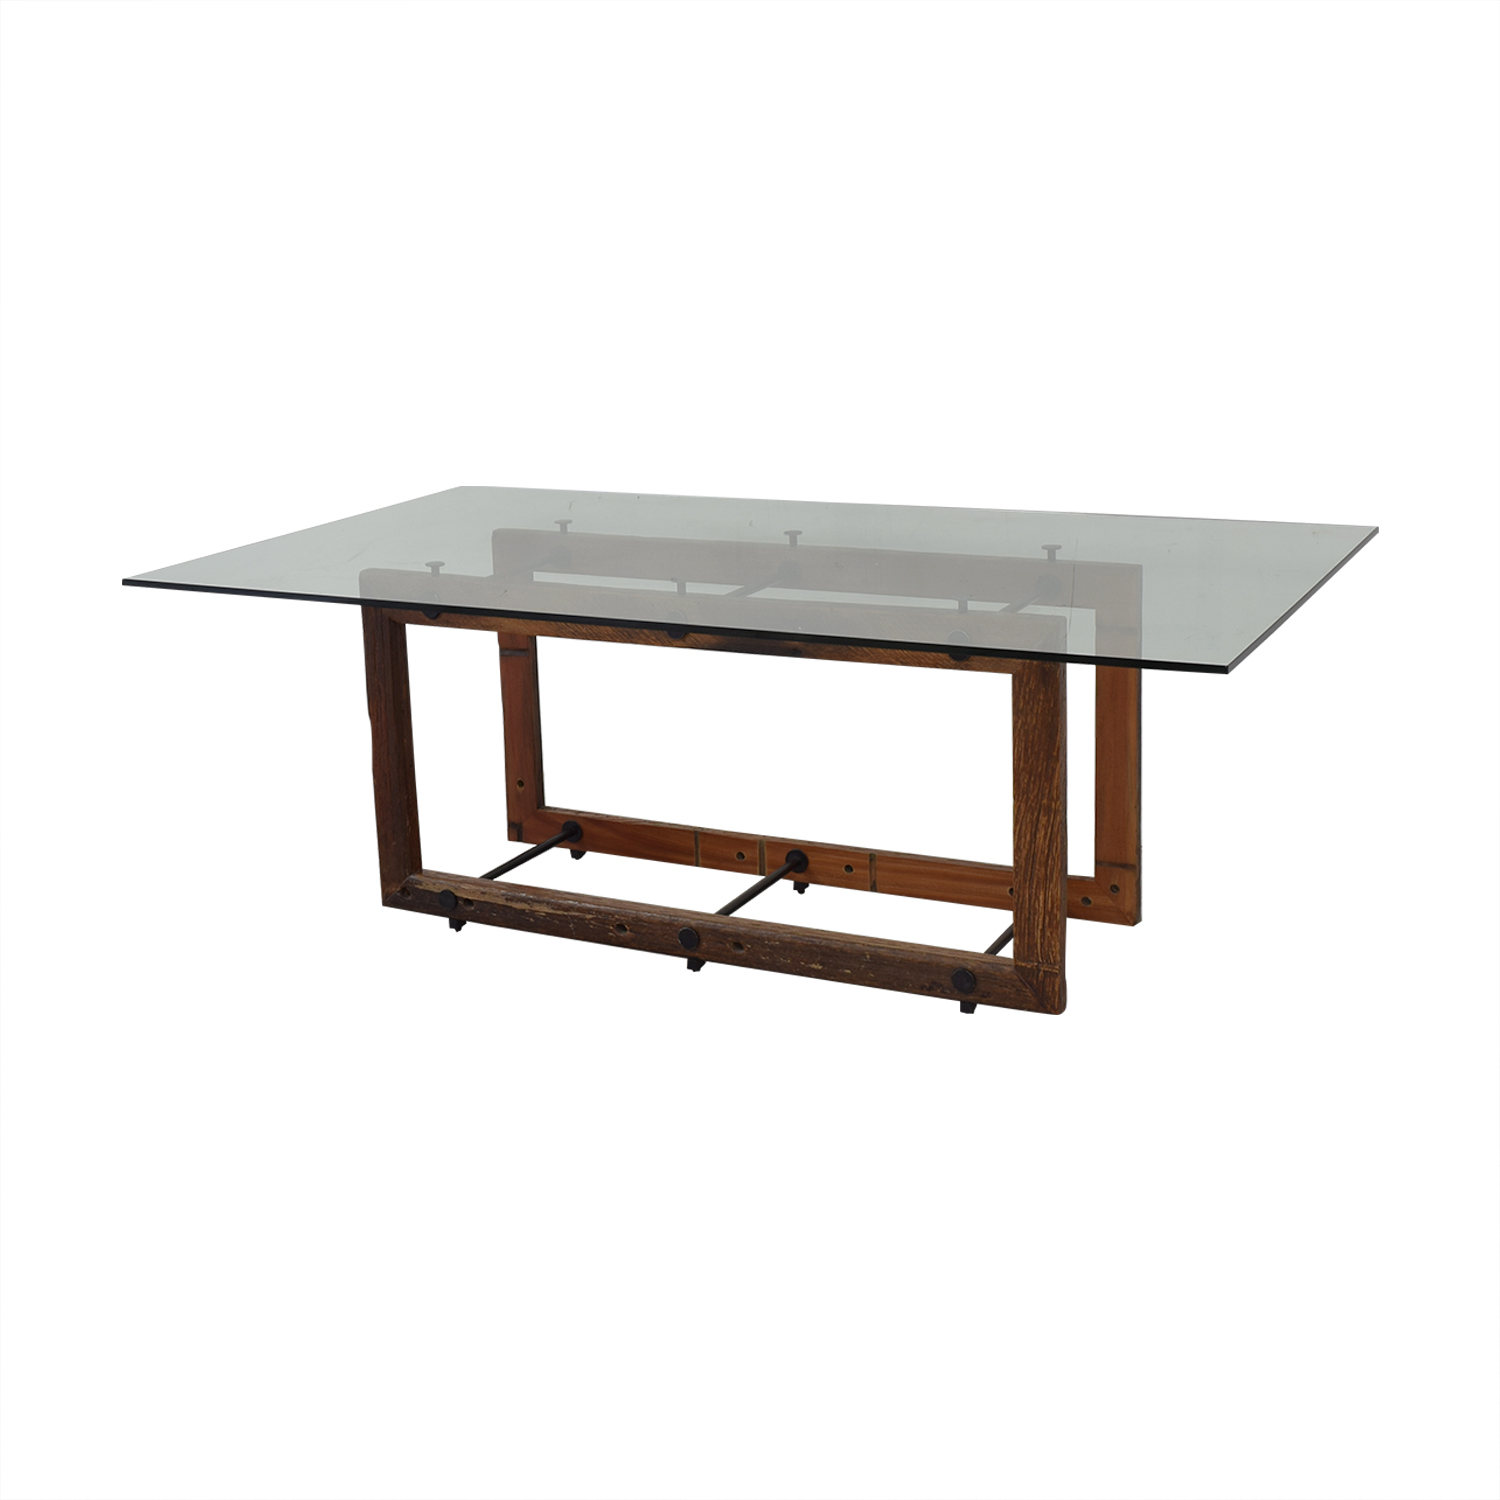 buy ABC Carpet & Home Glass Dining Table ABC Carpet & Home